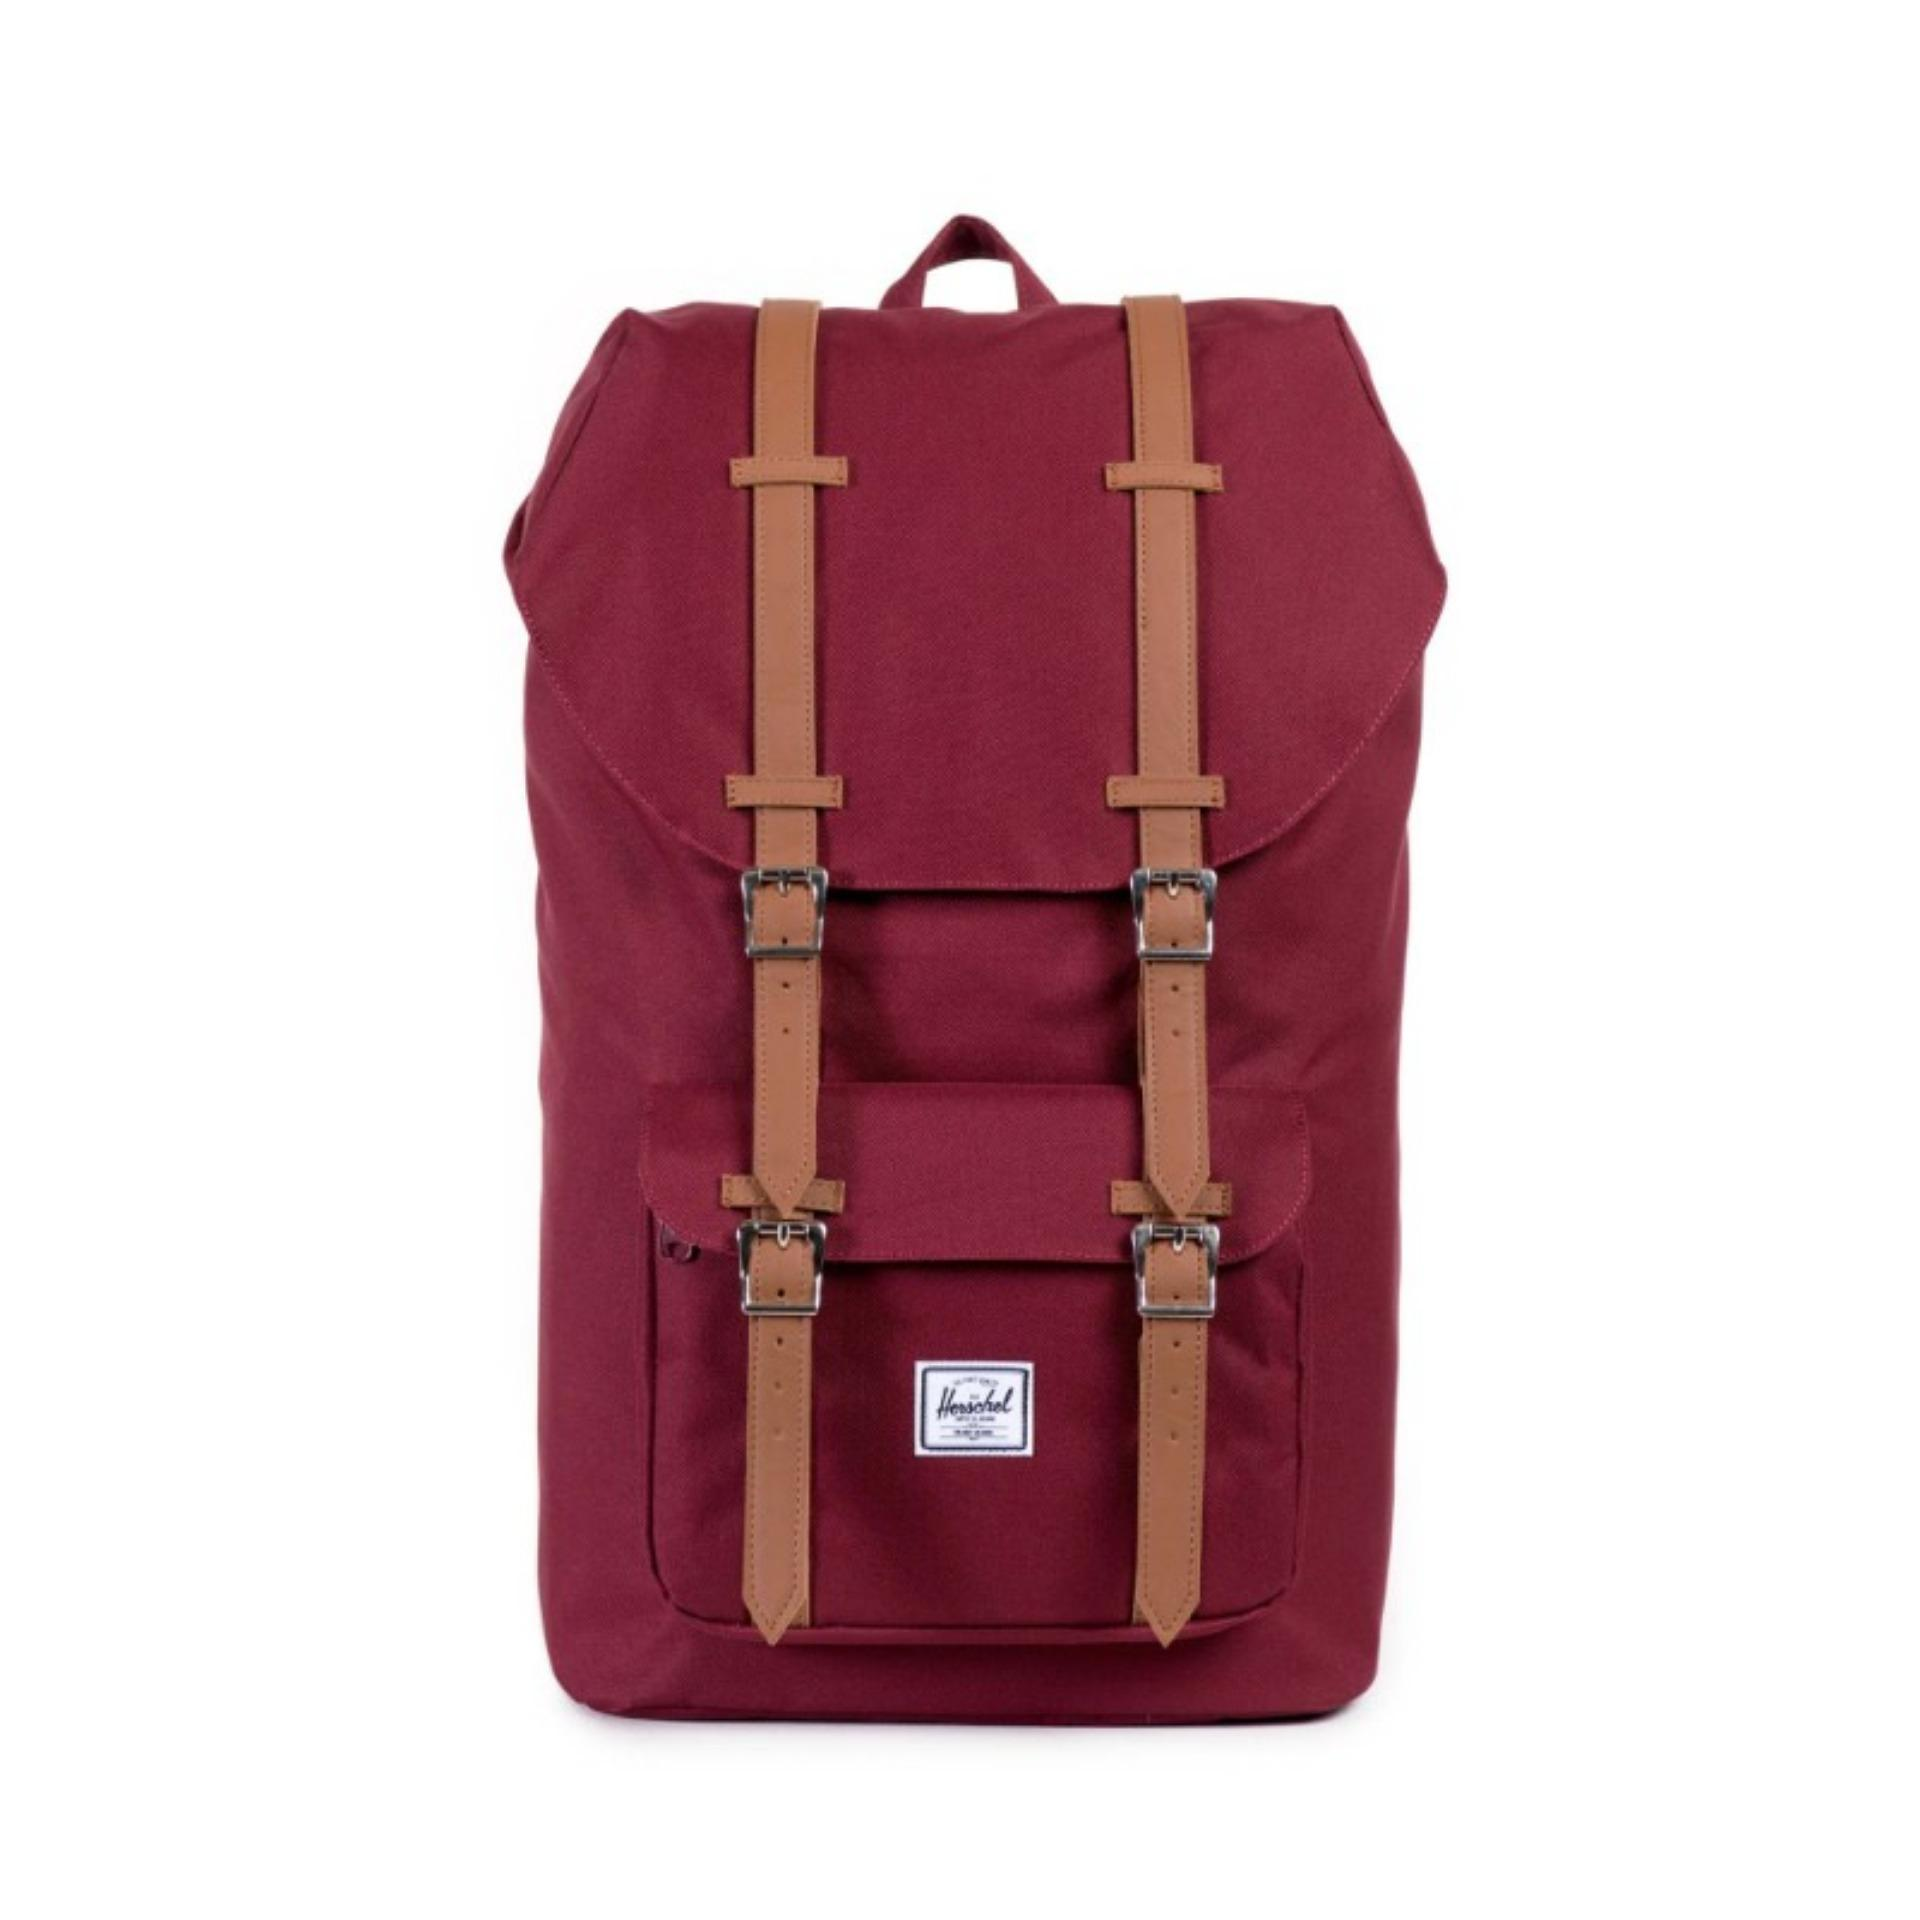 93042c945418 Buy Herschel Backpack Singapore- Fenix Toulouse Handball